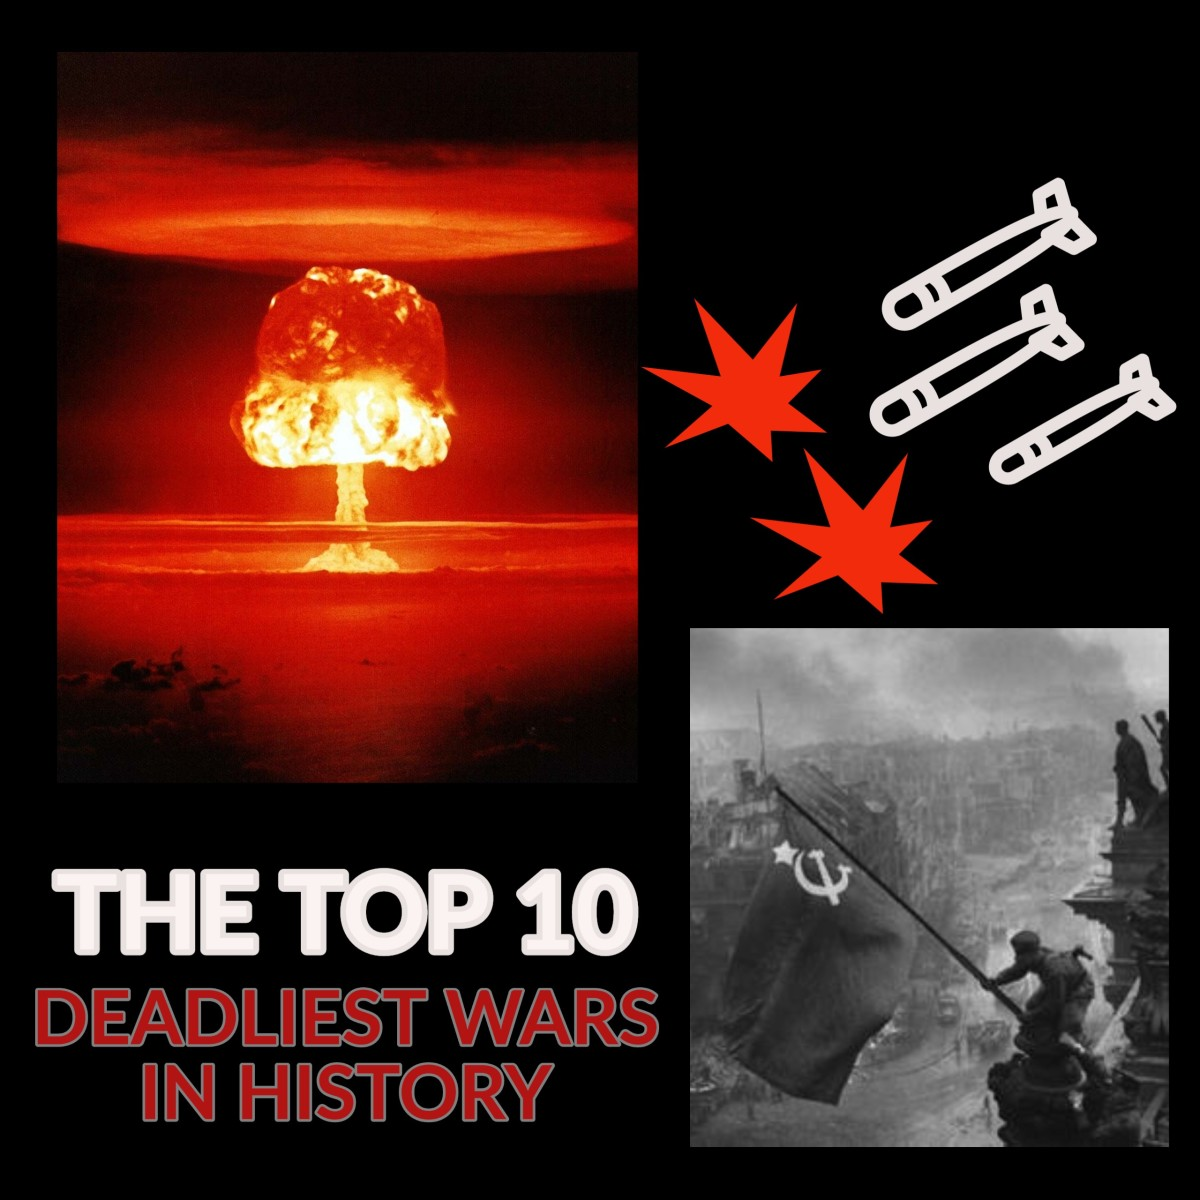 The Top 10 Deadliest Wars in History